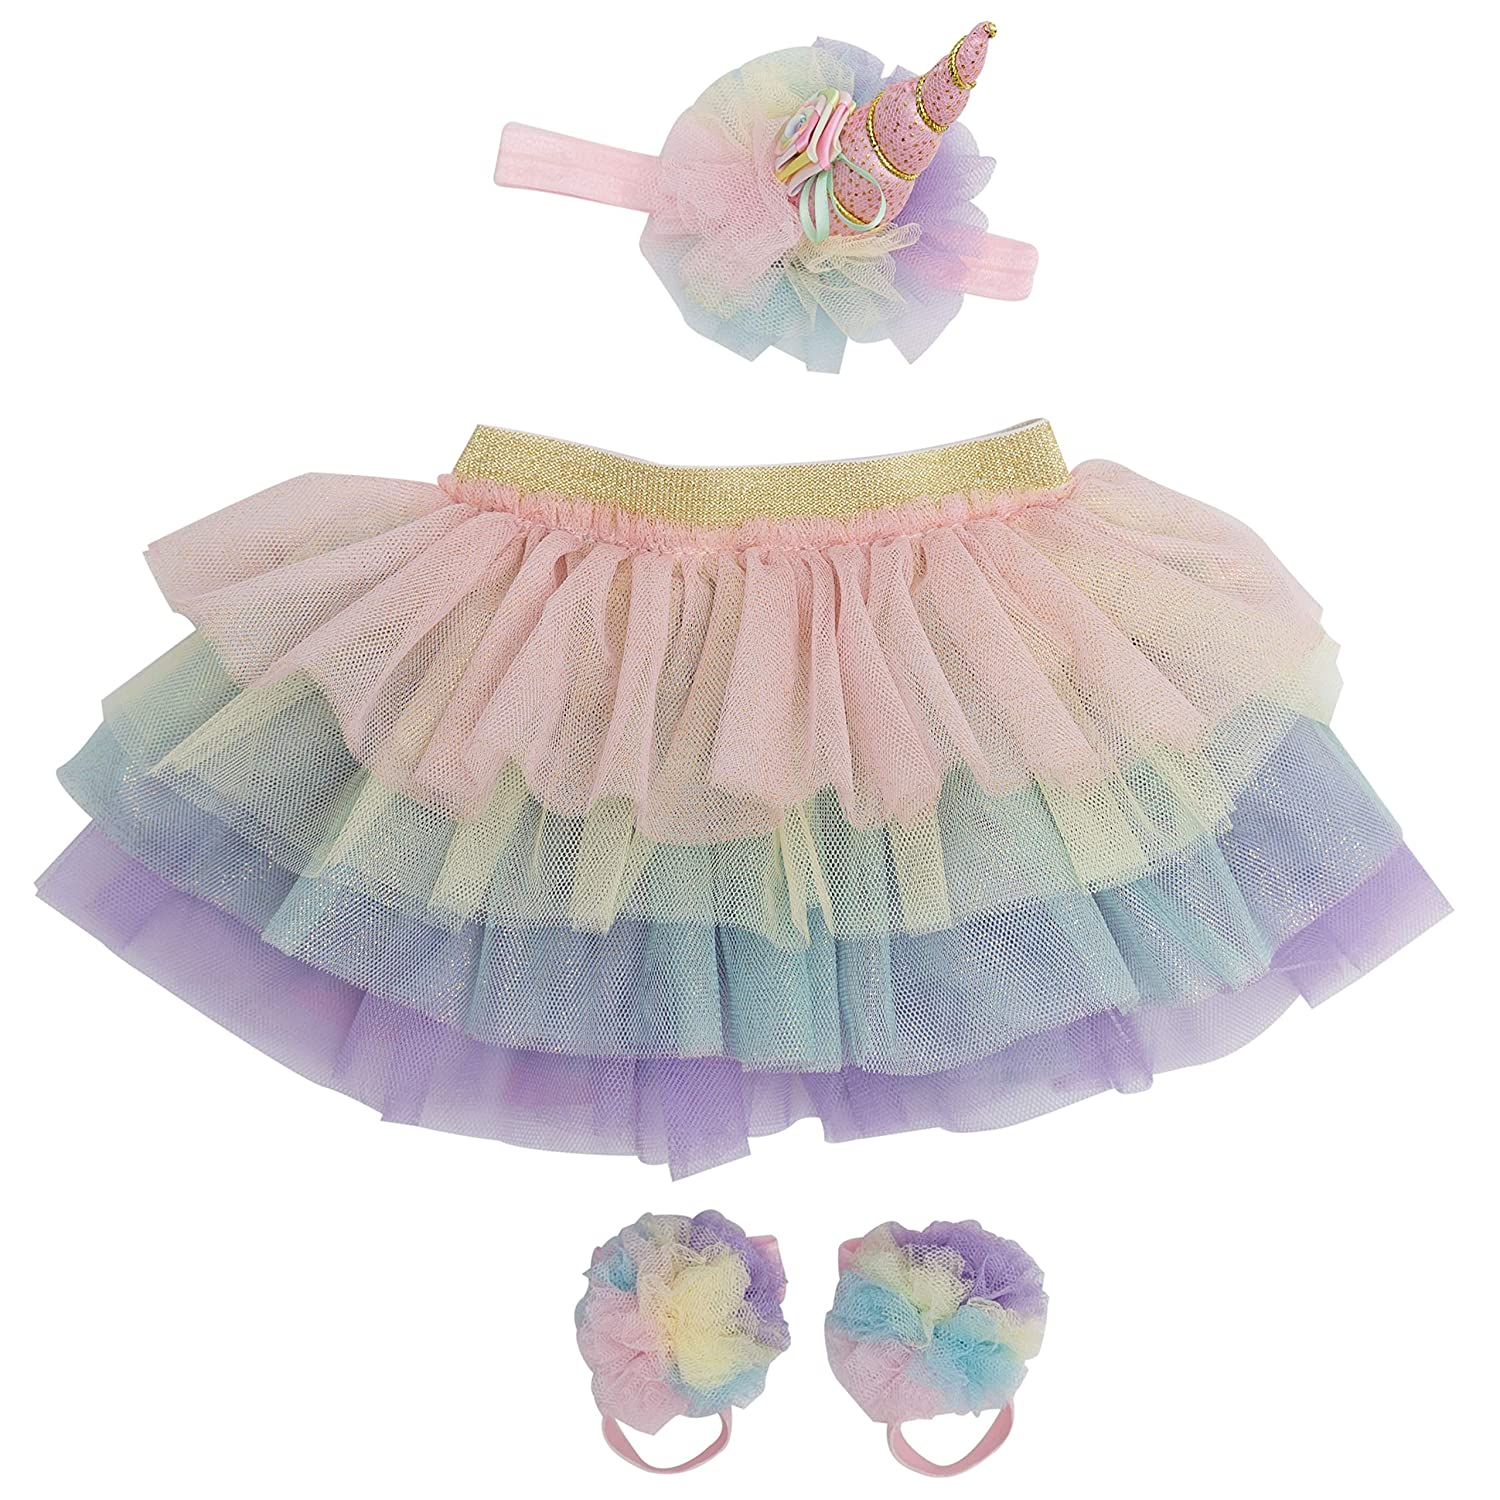 707d2af83871 Amazon.com: Unicorn Newborn Baby Girl Outfit Tutu Set Skirt Headband  Photography Prop for Babies Size: 0-9 Months: Clothing